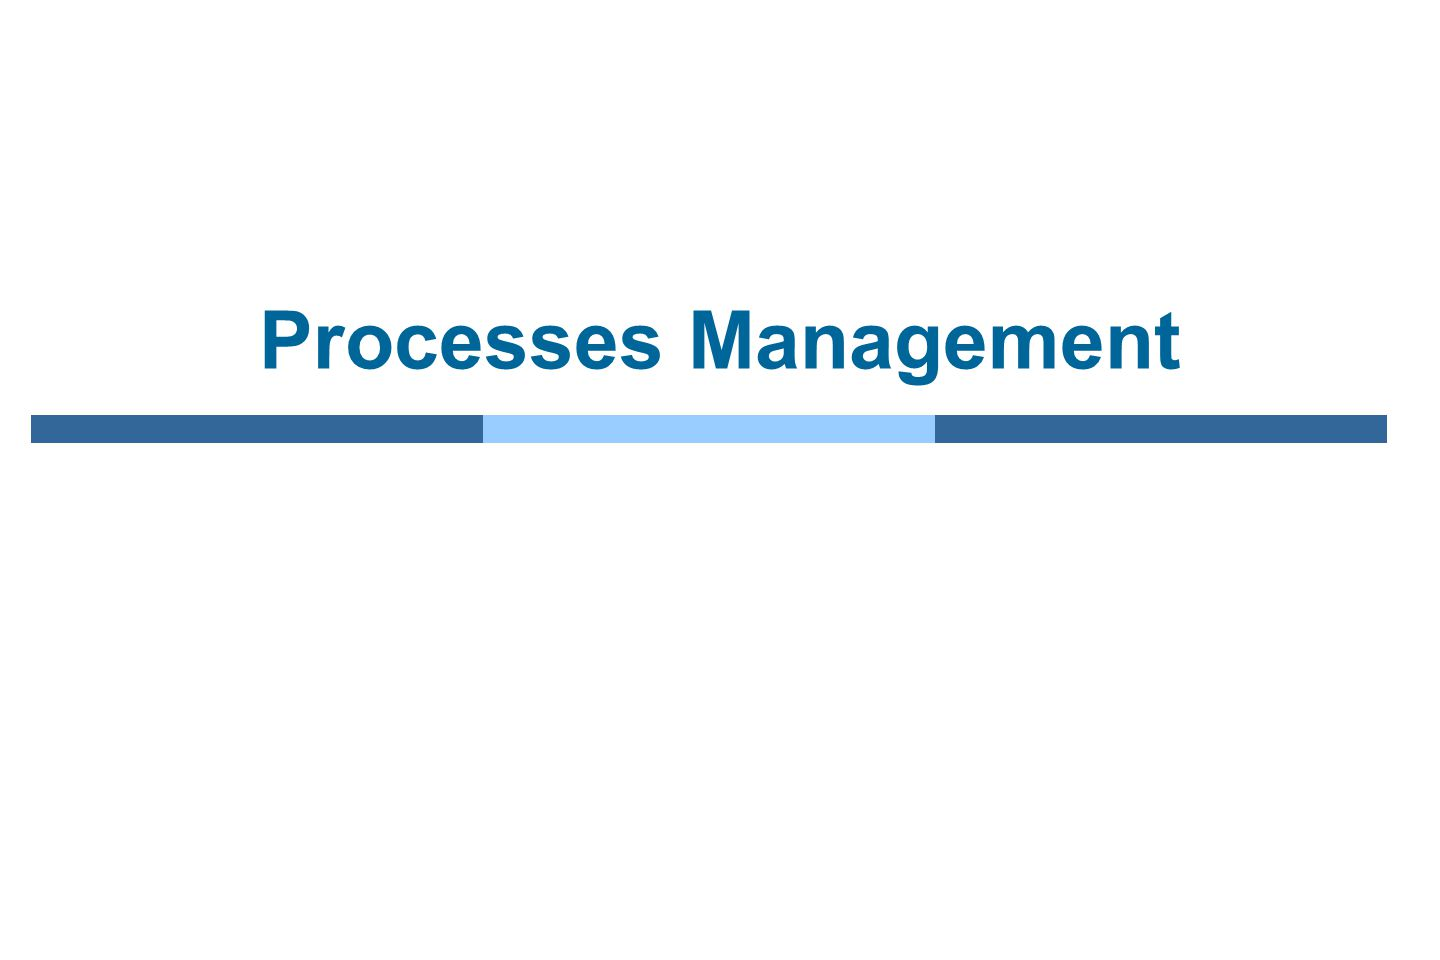 Processes Management